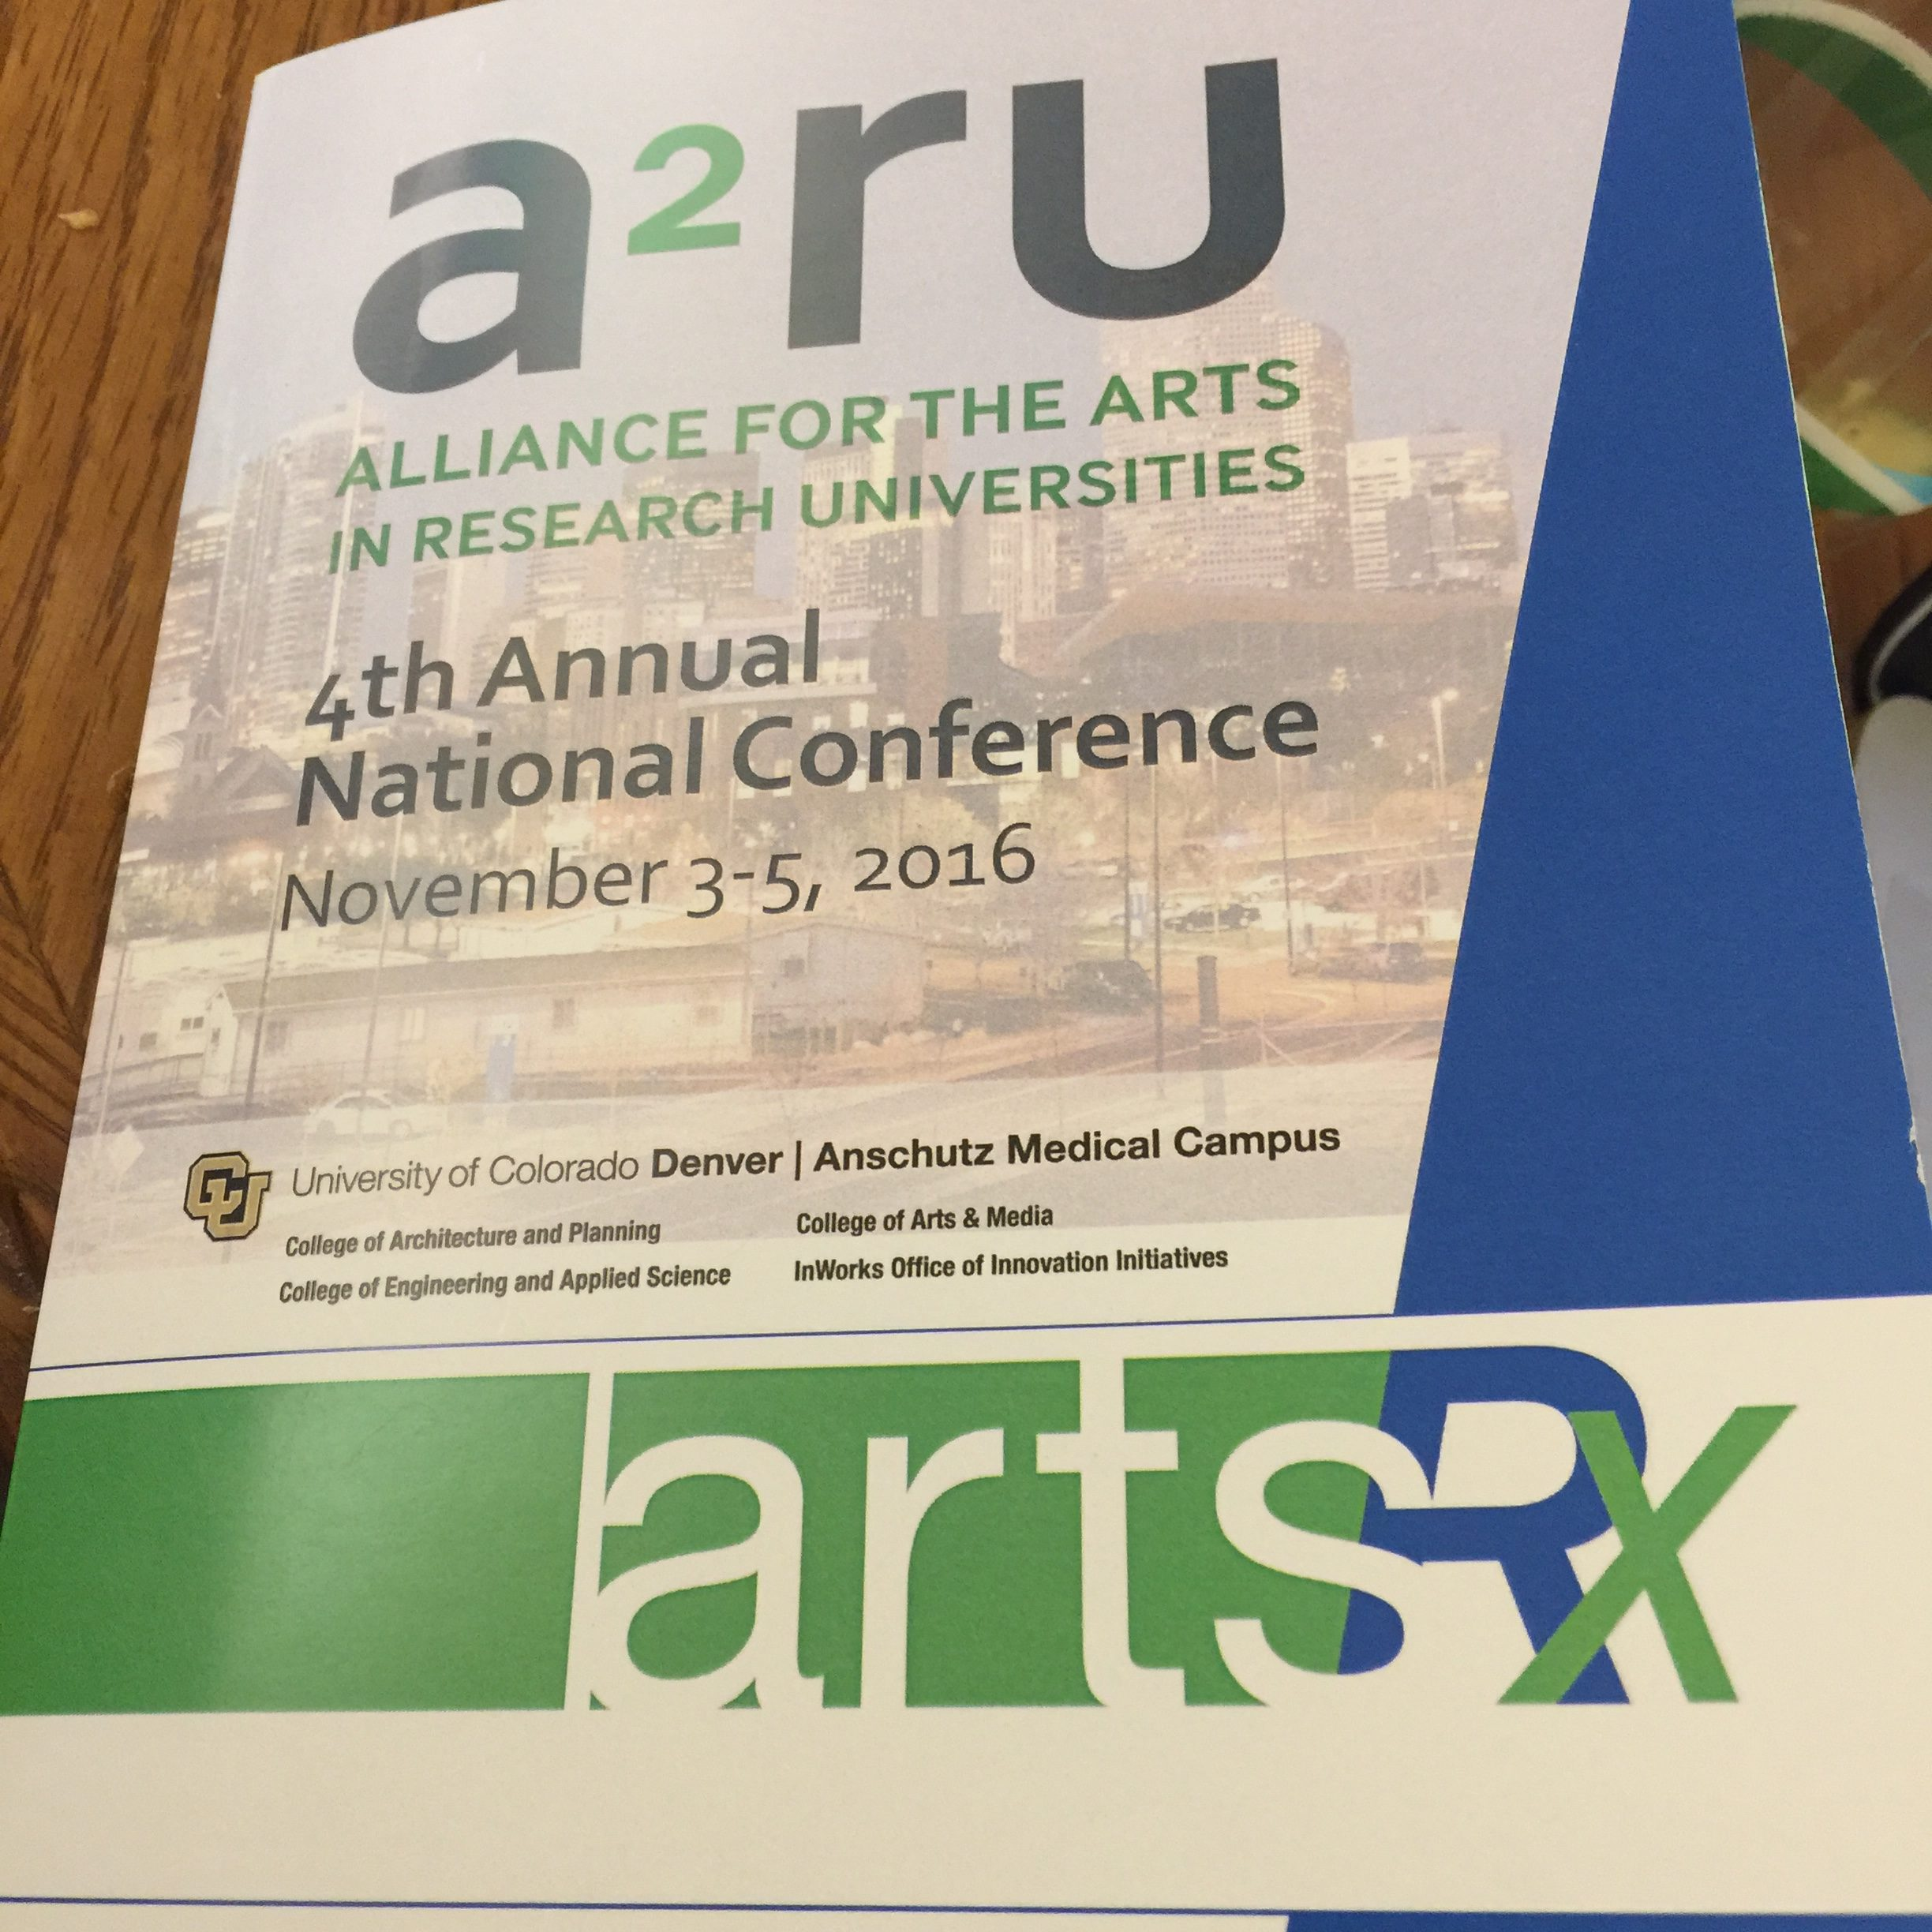 Alliance for the Arts in Research Universities (a2ru) 2016 National Conference is about to begin at CU Denver and the Anschutz Medical Campus.